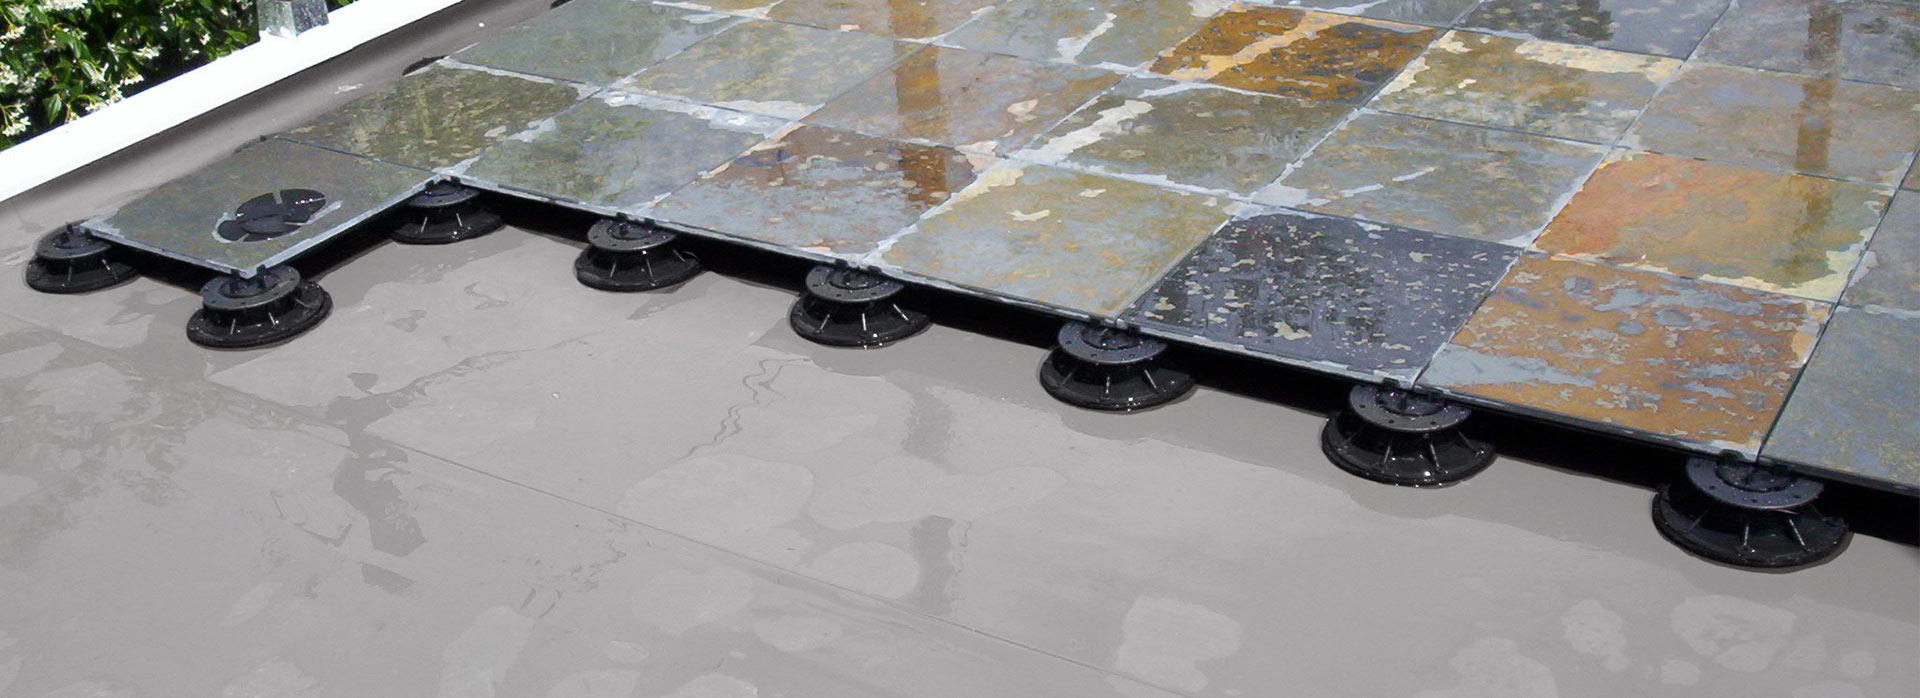 floating deck systems waterproofing